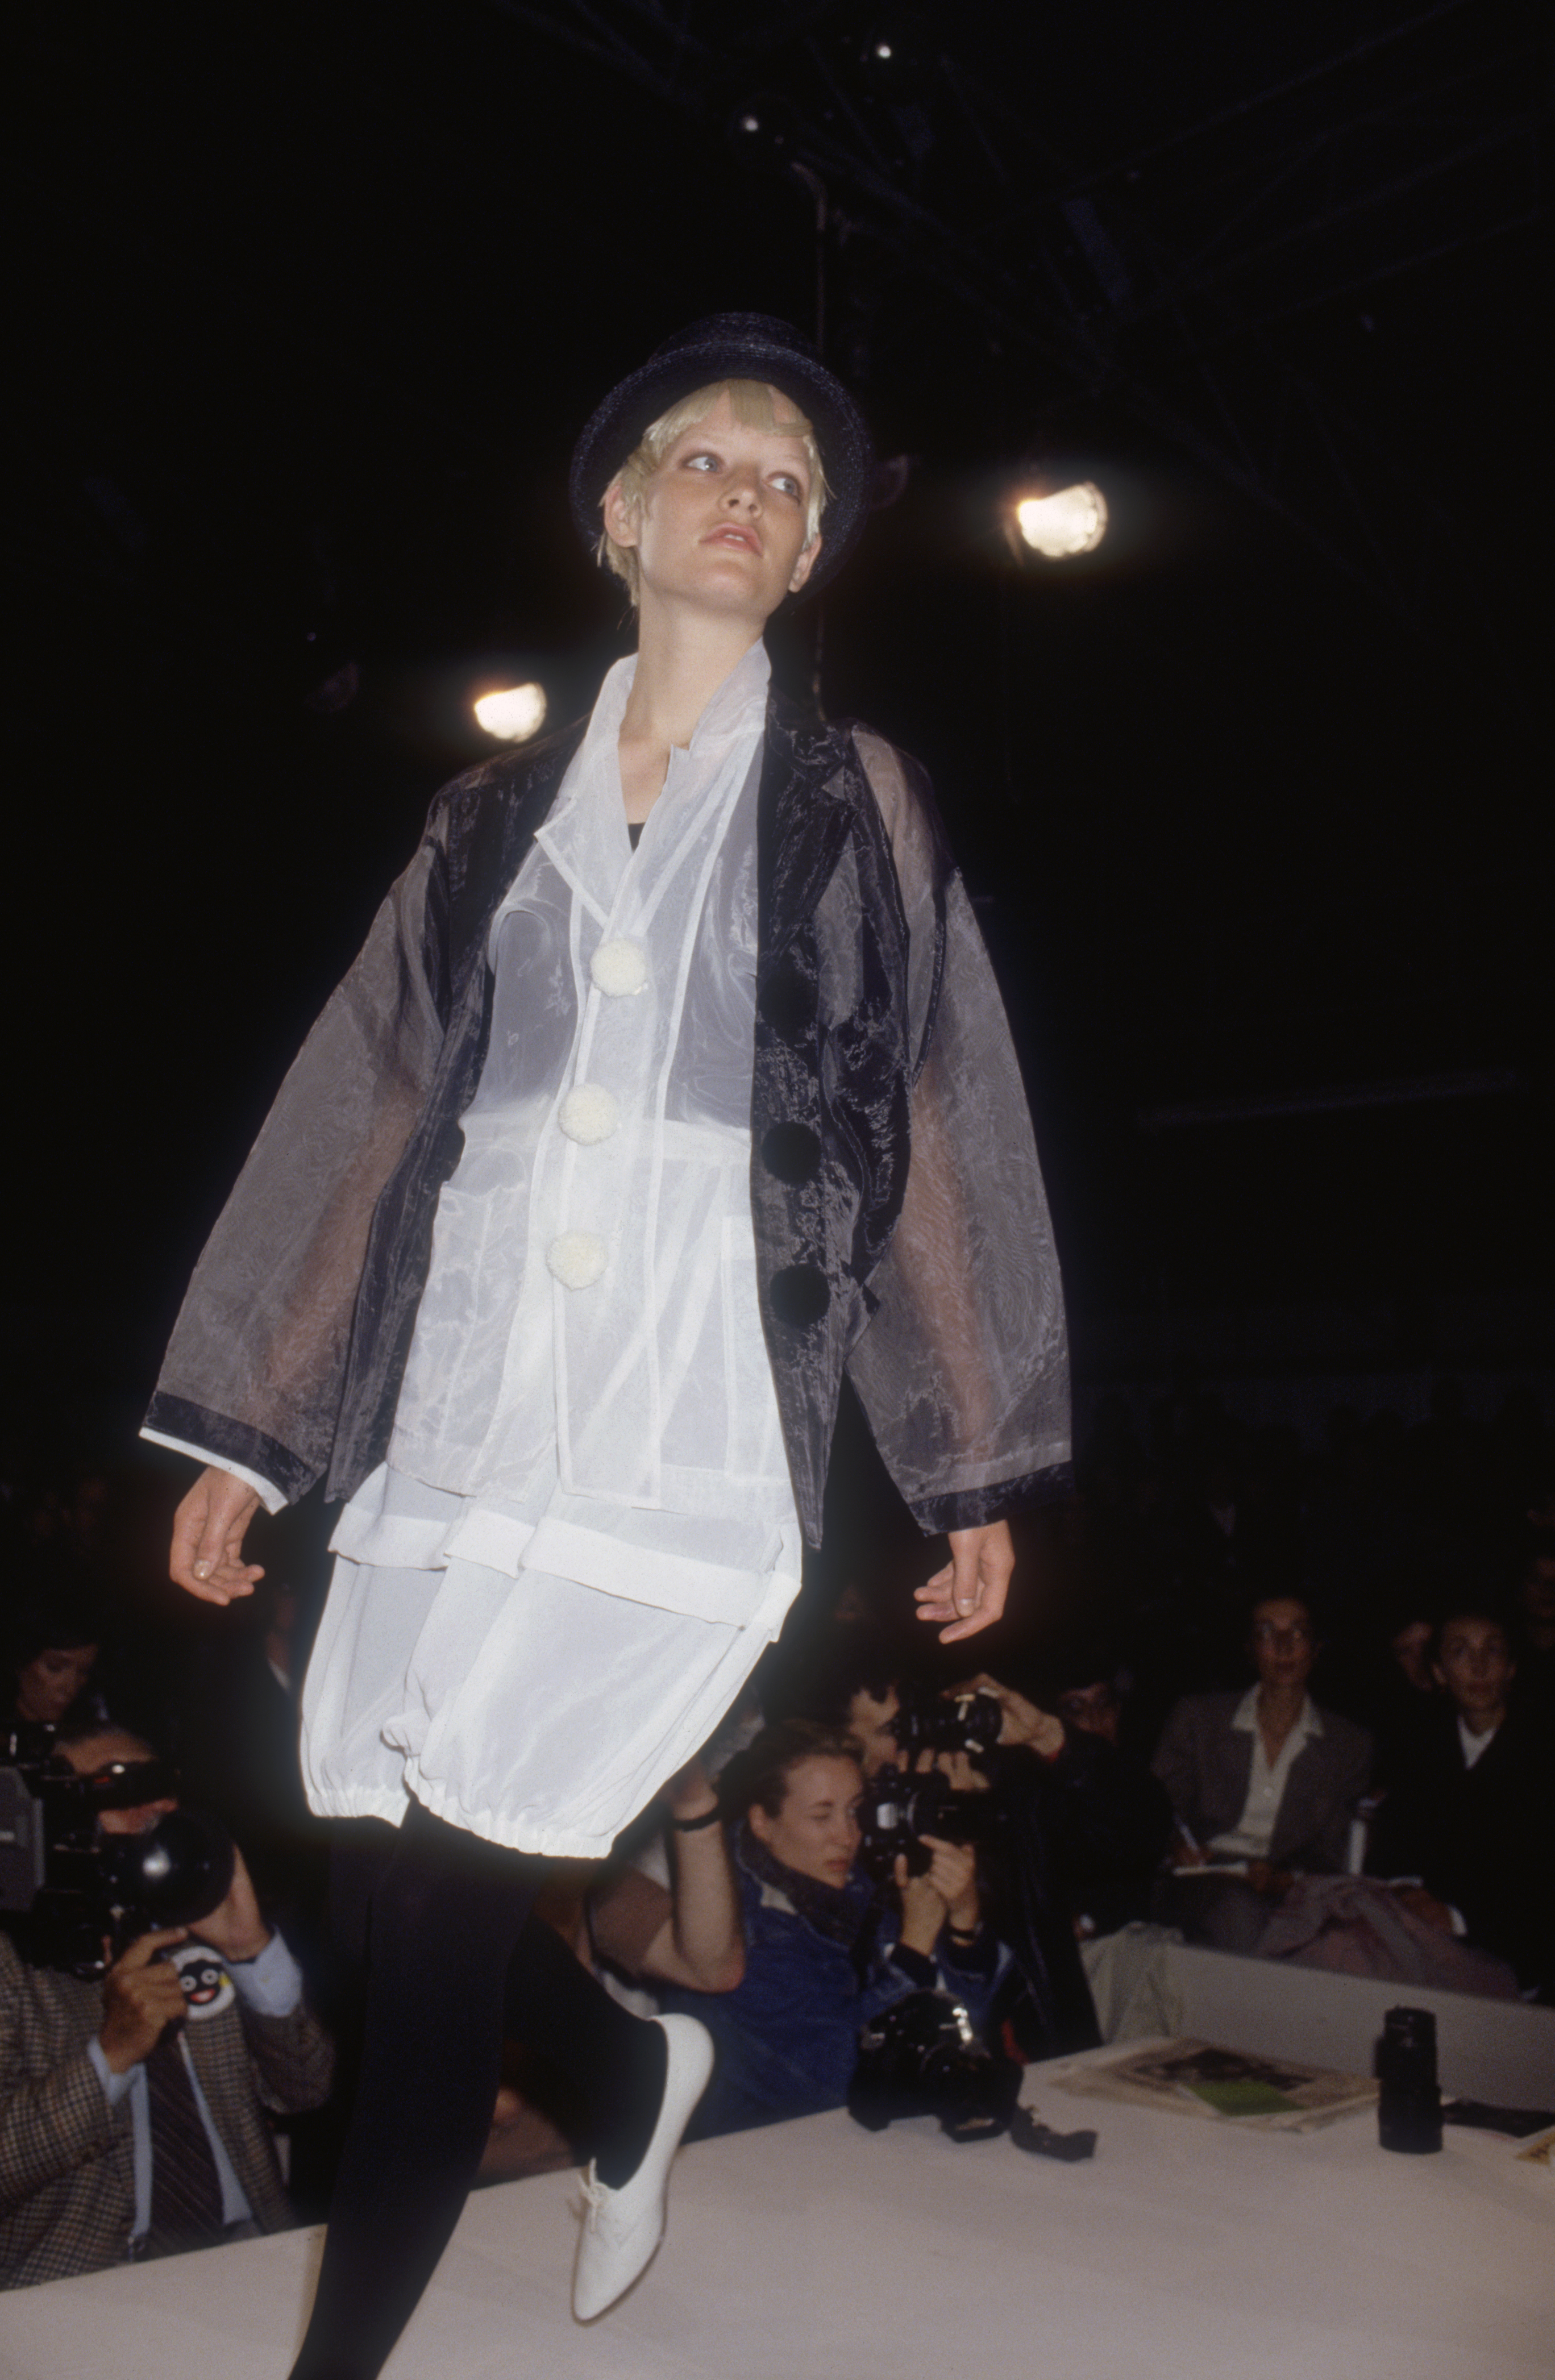 A fashion model wearing a ready-to-wear outfit and brimmed hat by Japanese fashion designer Rei Kawakubo for French fashion house Comme des Garcons. She is modeling the outfit during the Spring-Summer 1989 fashion show in Paris. (Photo by Pierre Vauthey/Sygma/Sygma via Getty Images)